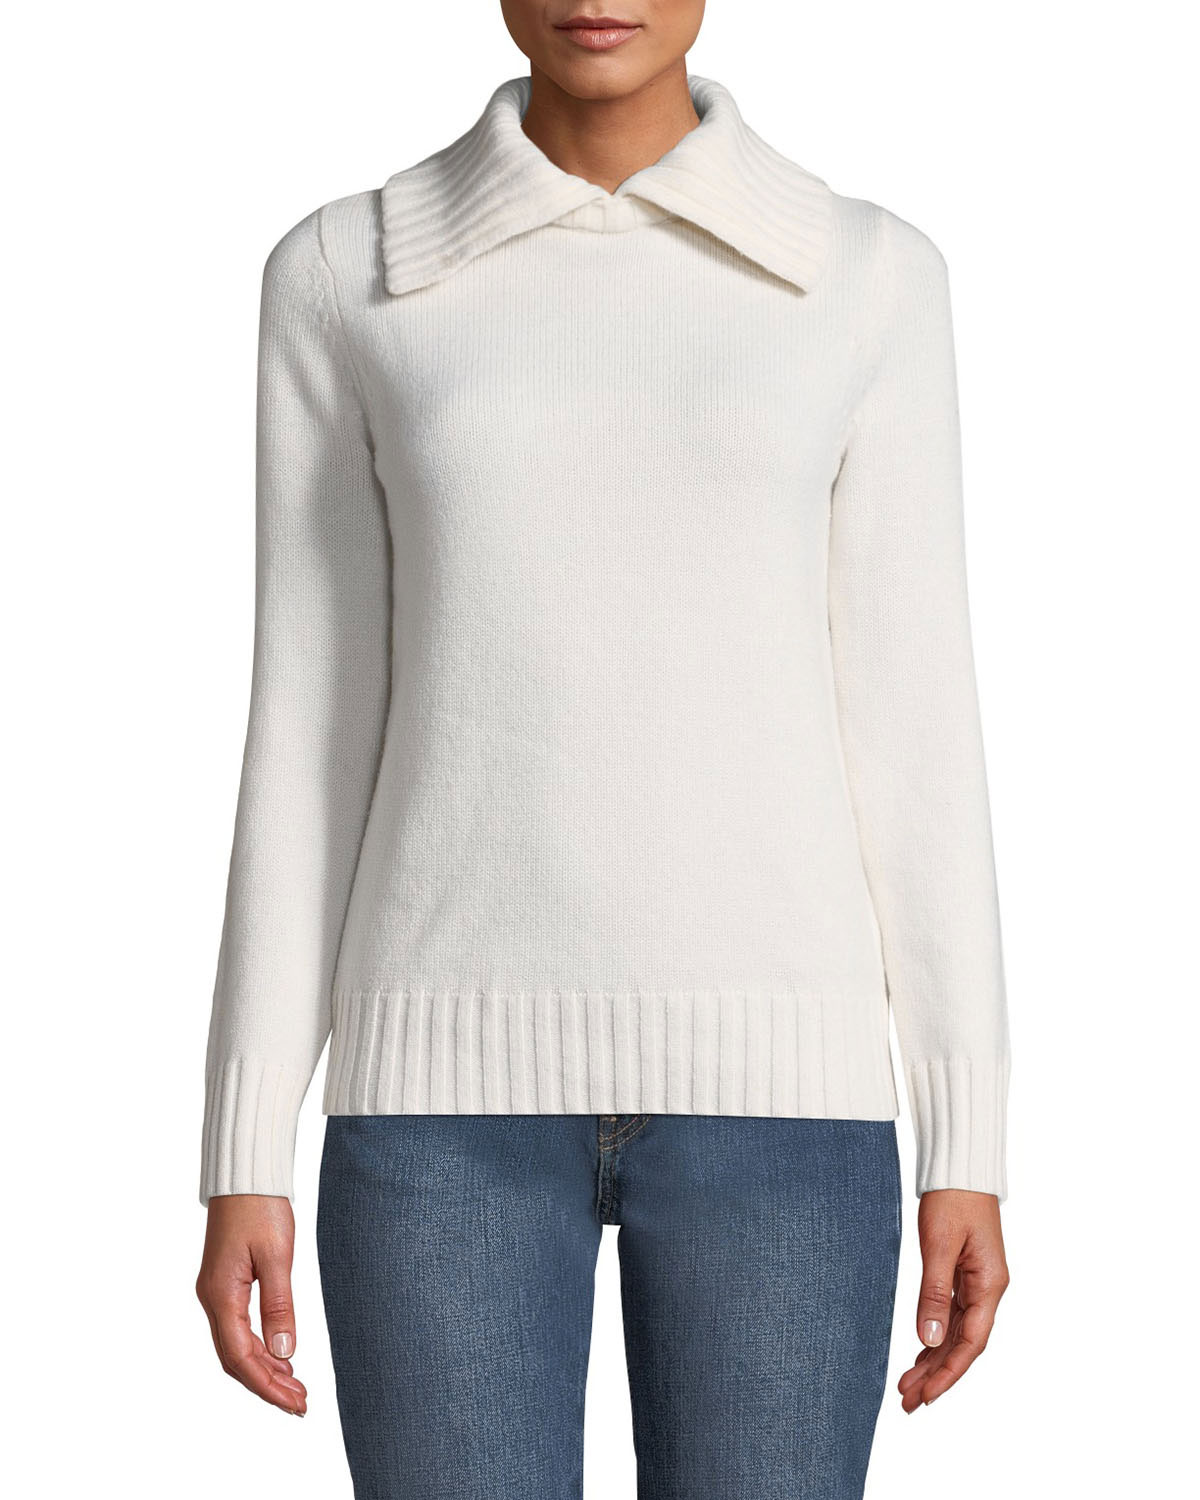 Co Wools WOOL-CASHMERE RIBBED-COLLAR SWEATER